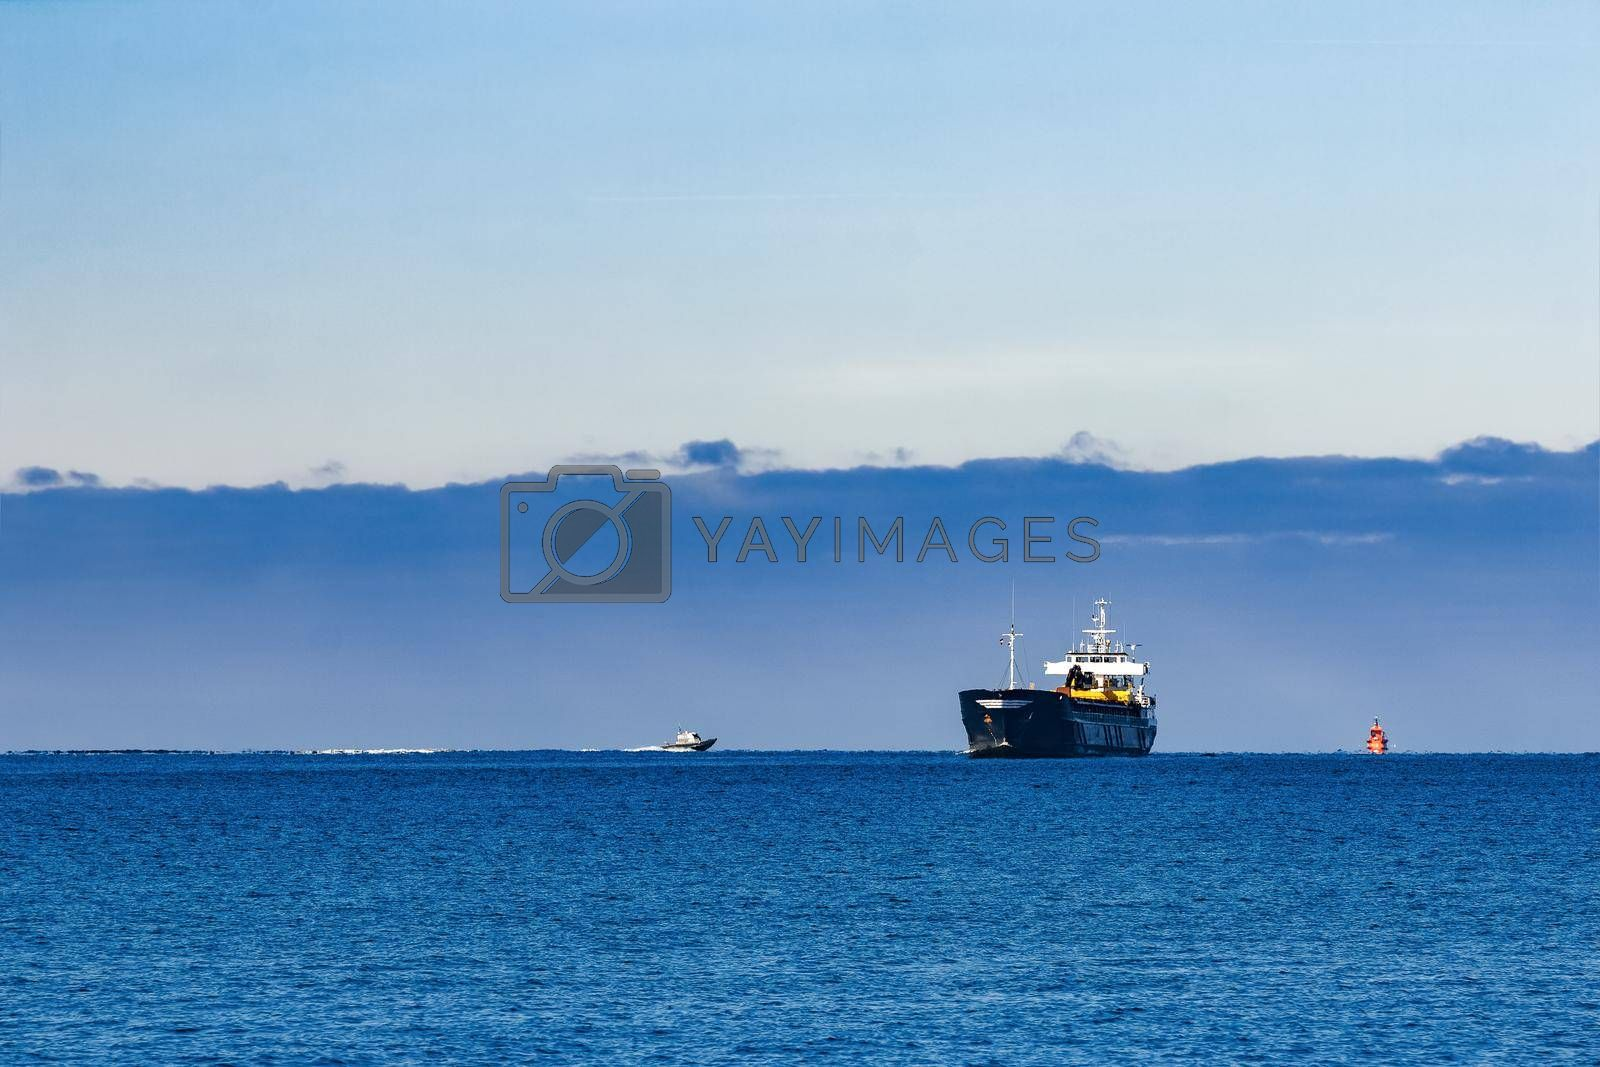 Black Sailing Bulk Carrier. Cargo Ship with Long Reach Excavator Moving in Still Water at Sunny Day by the Sea